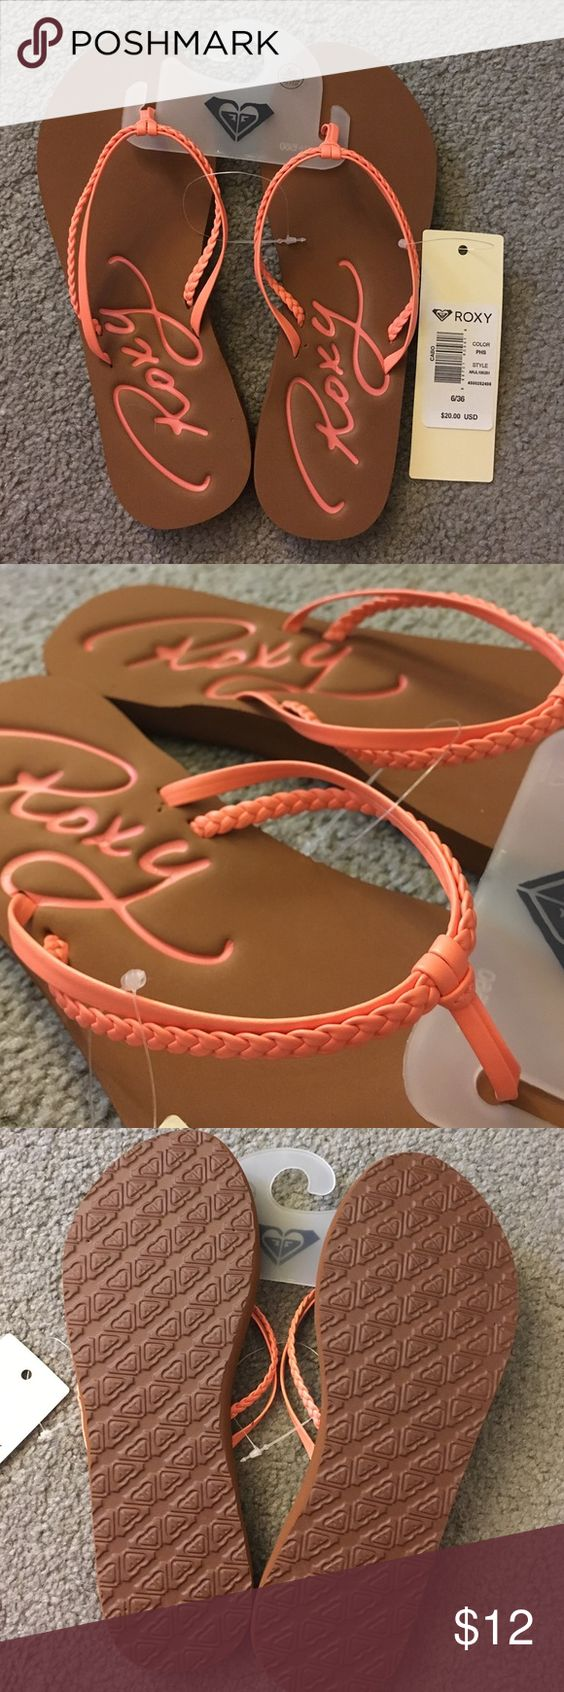 Roxy Flip flips Peach faux leather braided strap. Soft insole. Durable rubber outsole. New with tags 👍🏻 Roxy Shoes Slippers